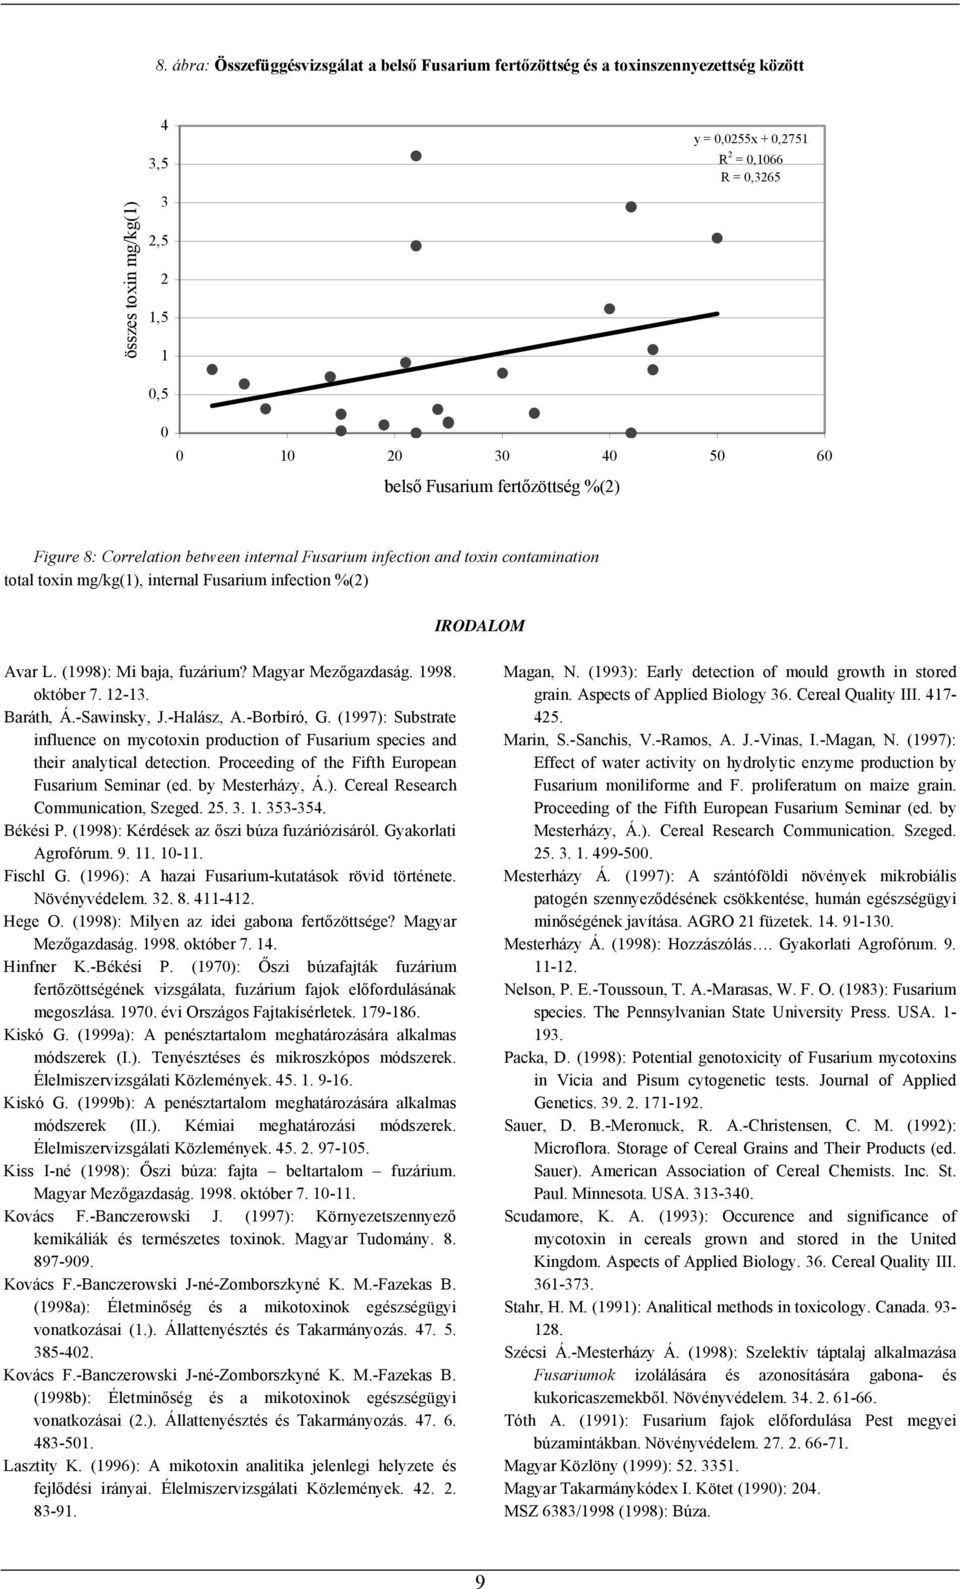 1998. október 7. 1-13. Baráth, Á.-Sawinsky, J.-Halász, A.-Borbíró, G. (1997): Substrate influence on mycotoxin production of Fusarium species and their analytical detection.